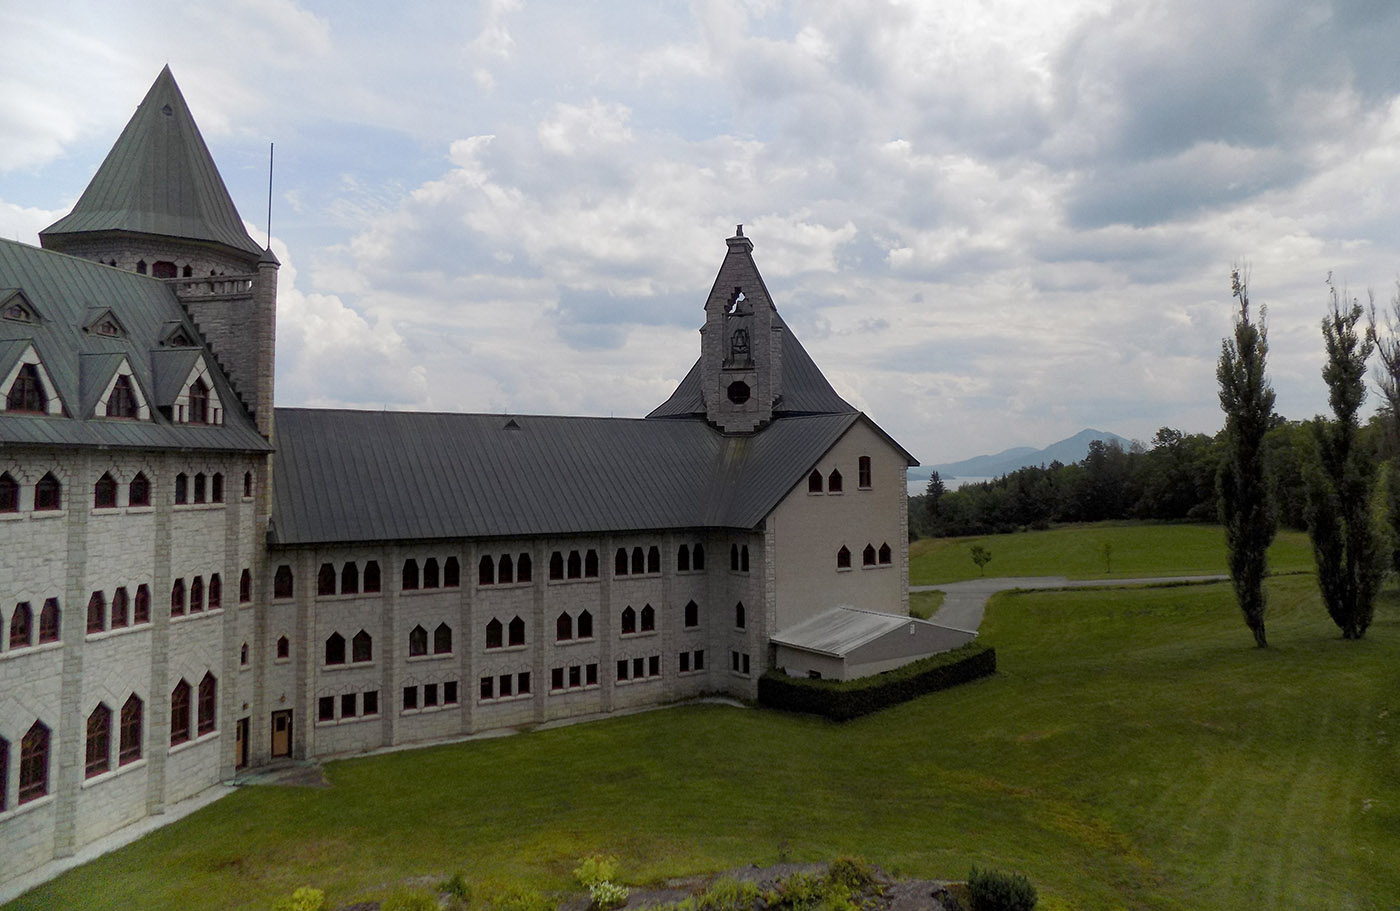 The rear area of the abbey is where the monks live in small individual rooms known as cells. Mountains and Lake Memphremagog are in the background. Photo: James Morgan